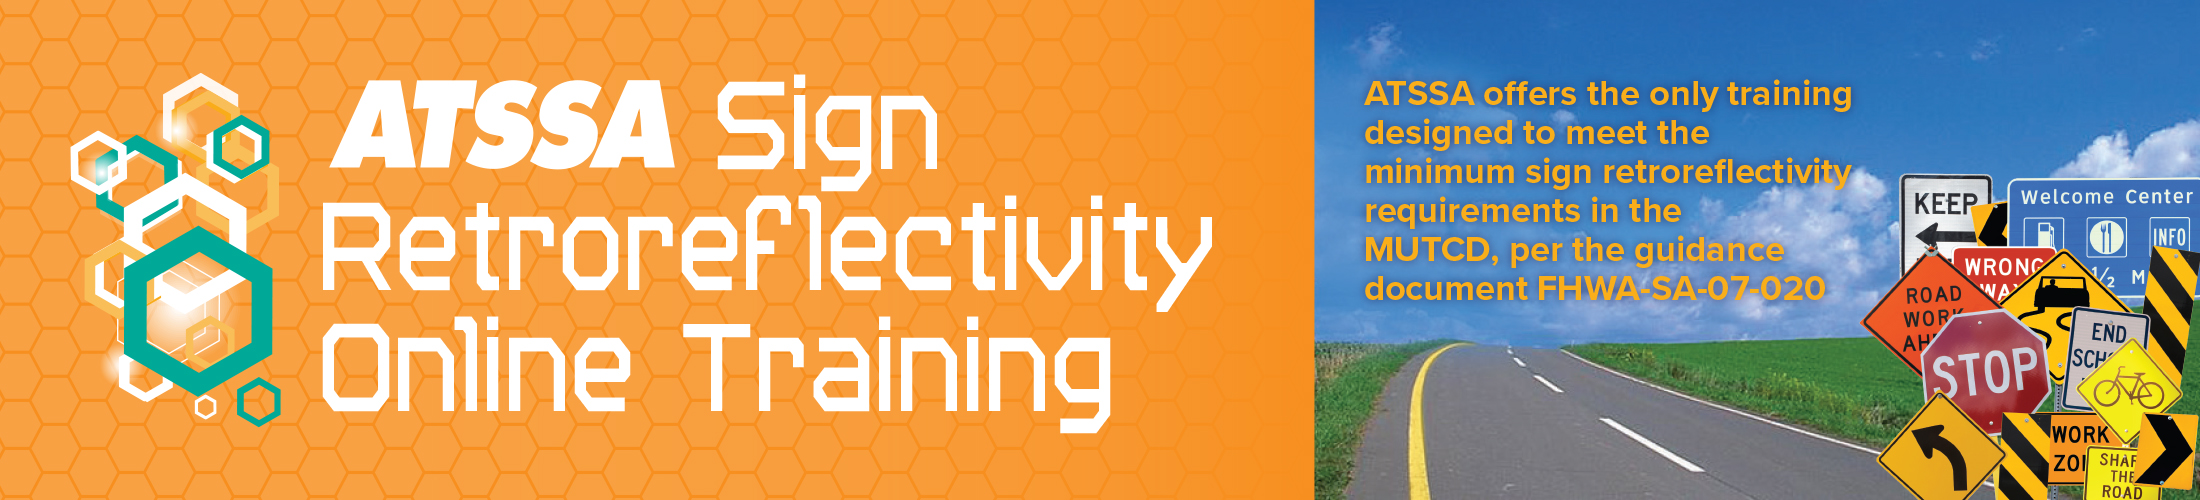 Sign Retroreflectivity Online Training